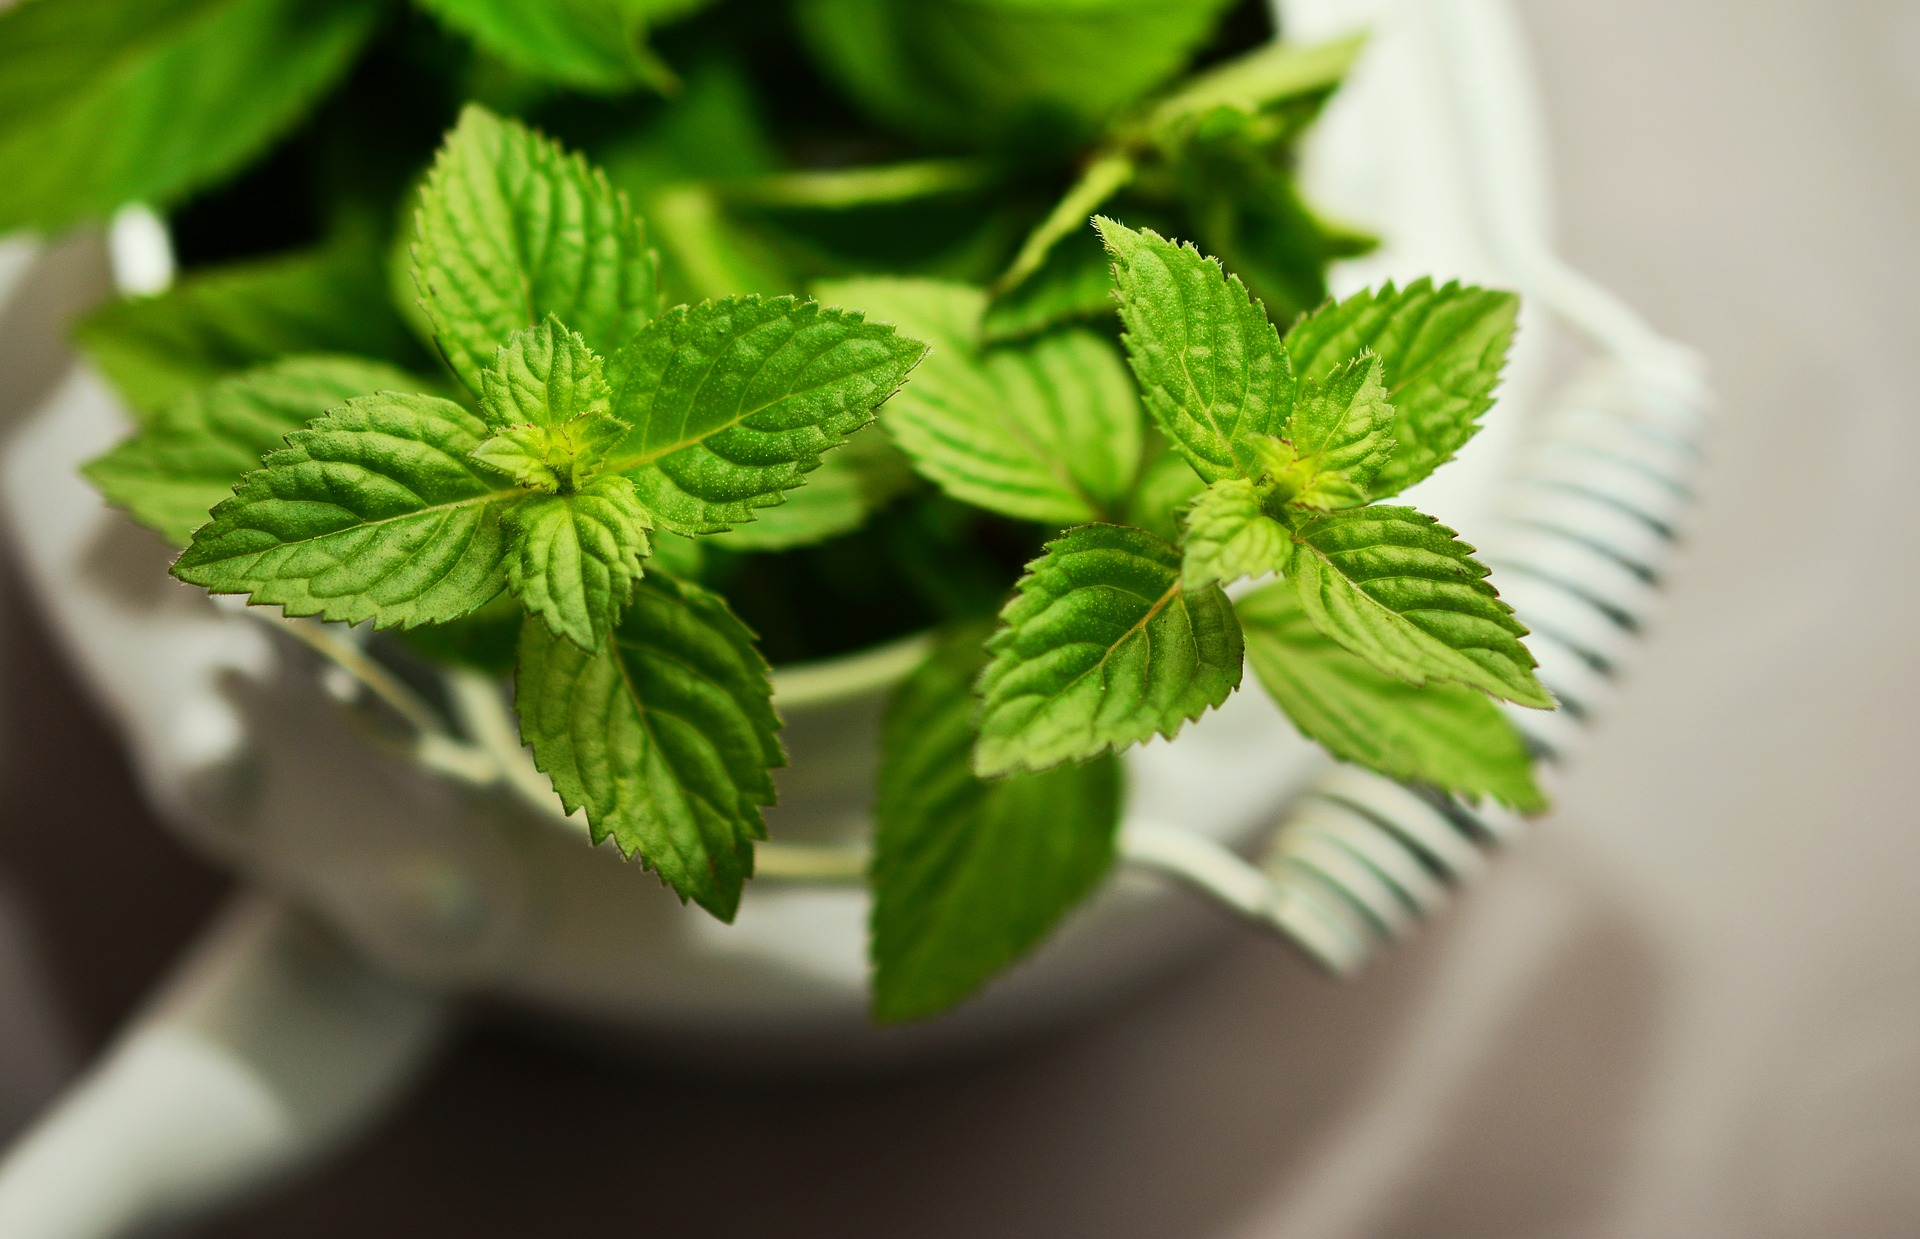 What is Mint good for?